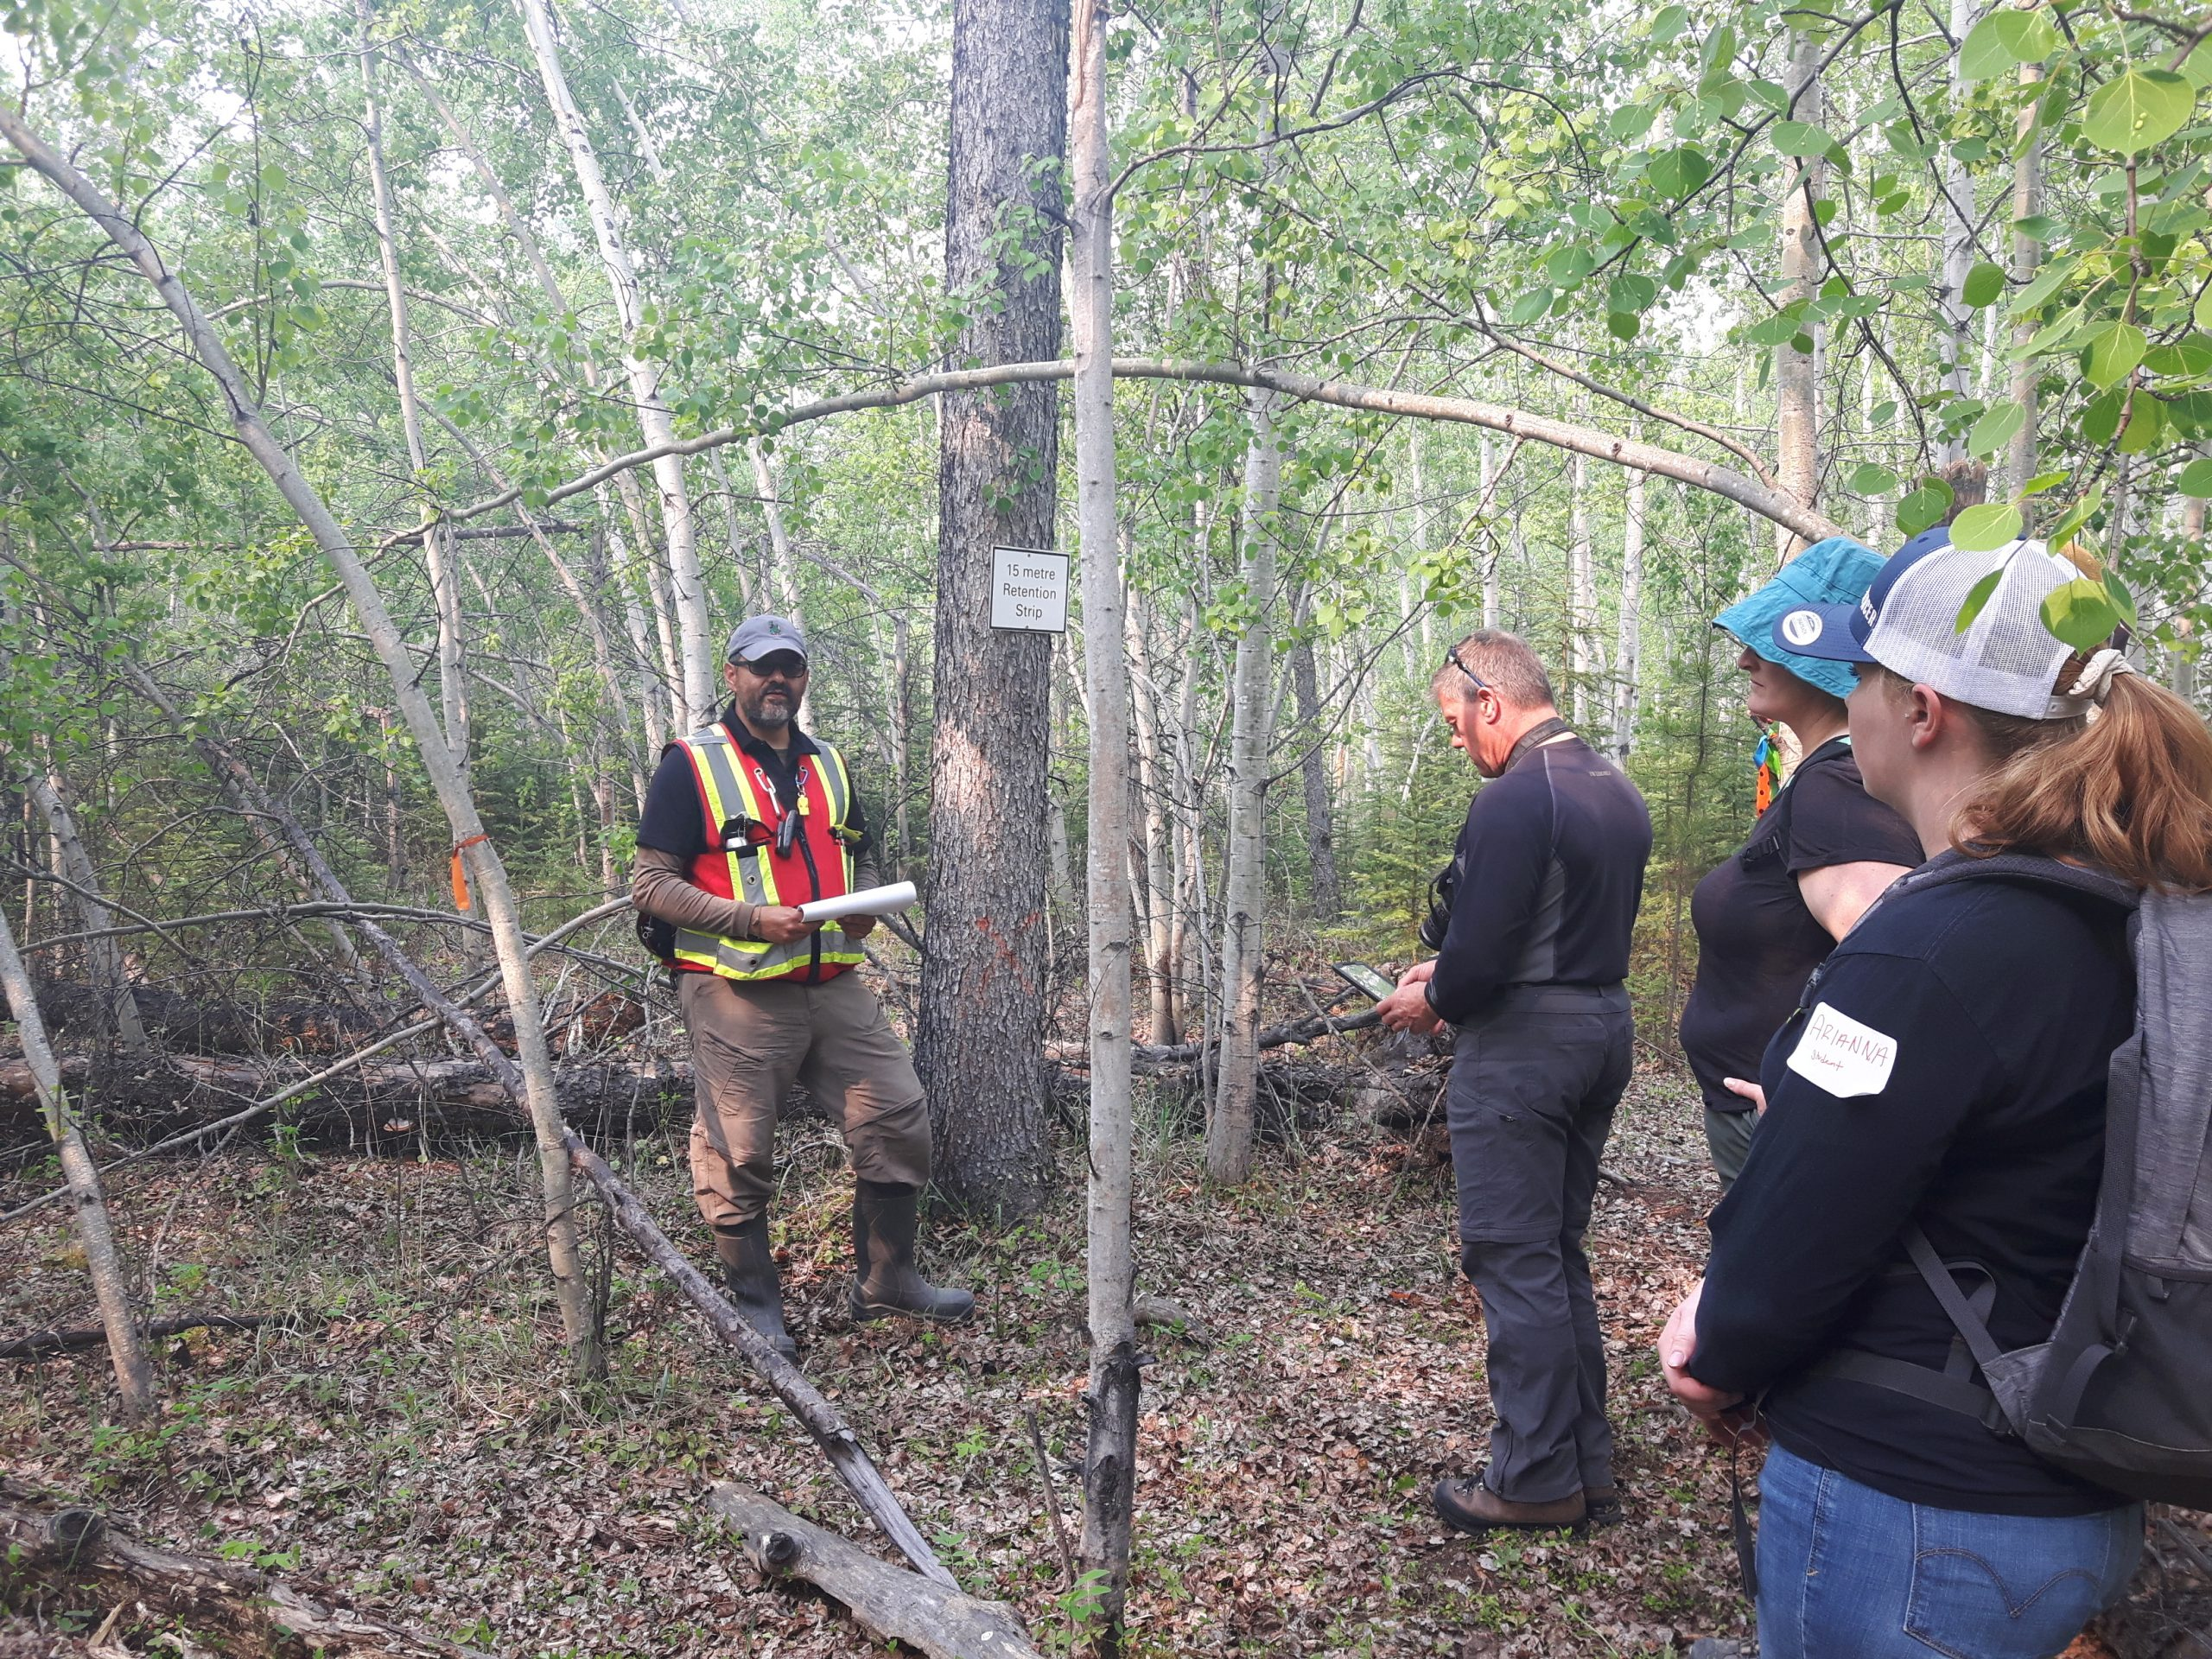 A group of foresters touring an experimental forest